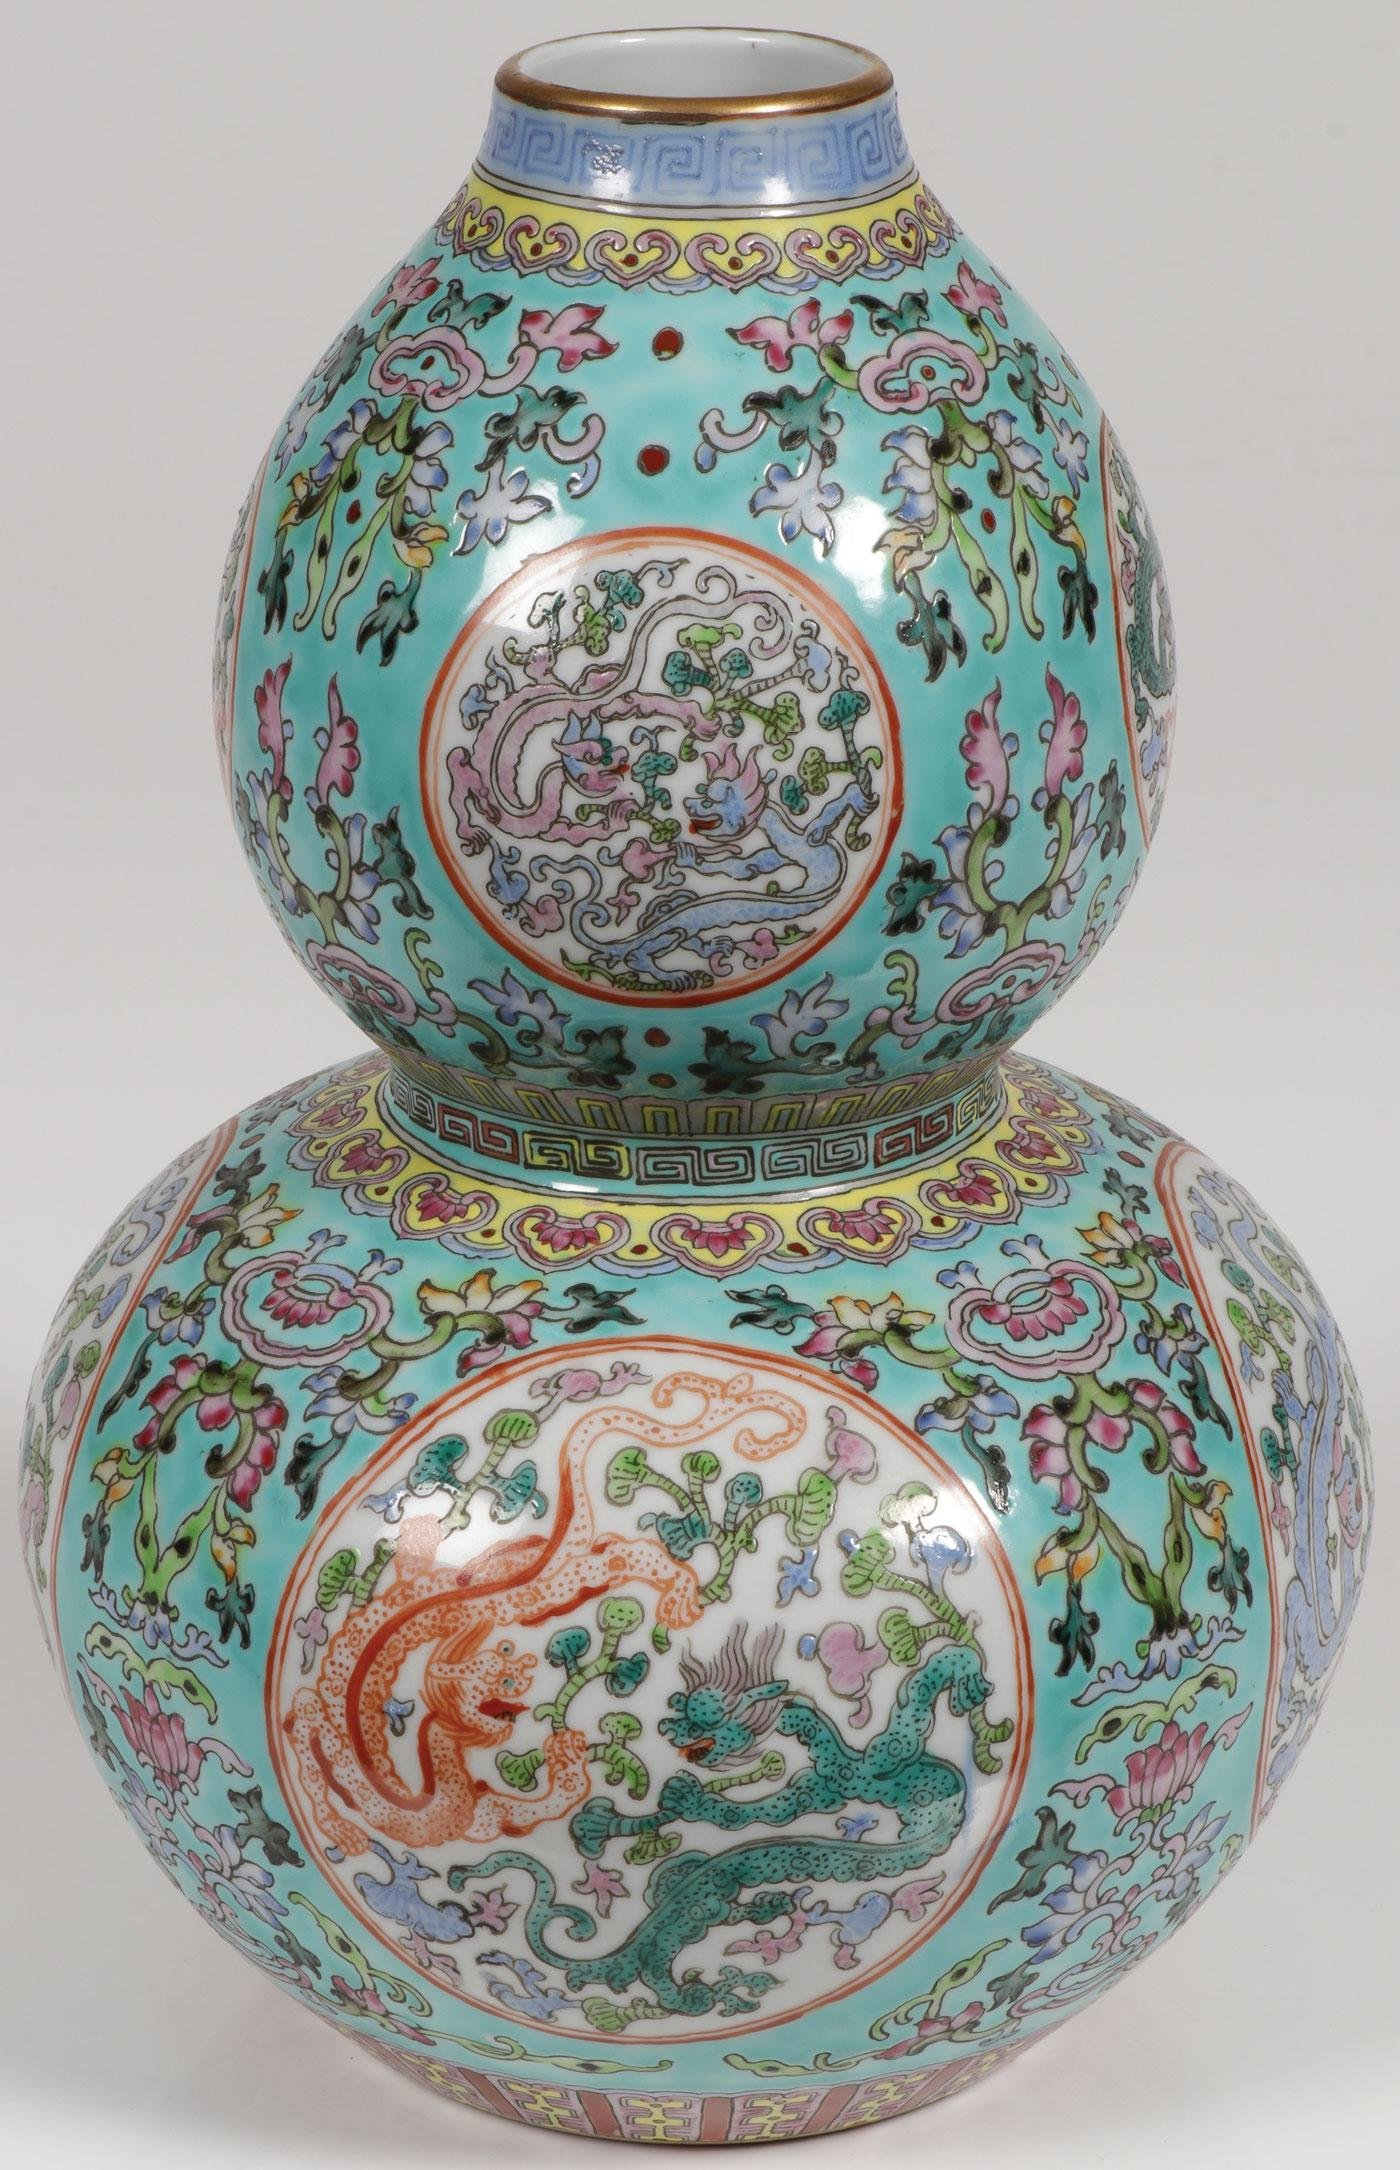 A CHINESE PORCELAIN DOUBLE GOURD VASE